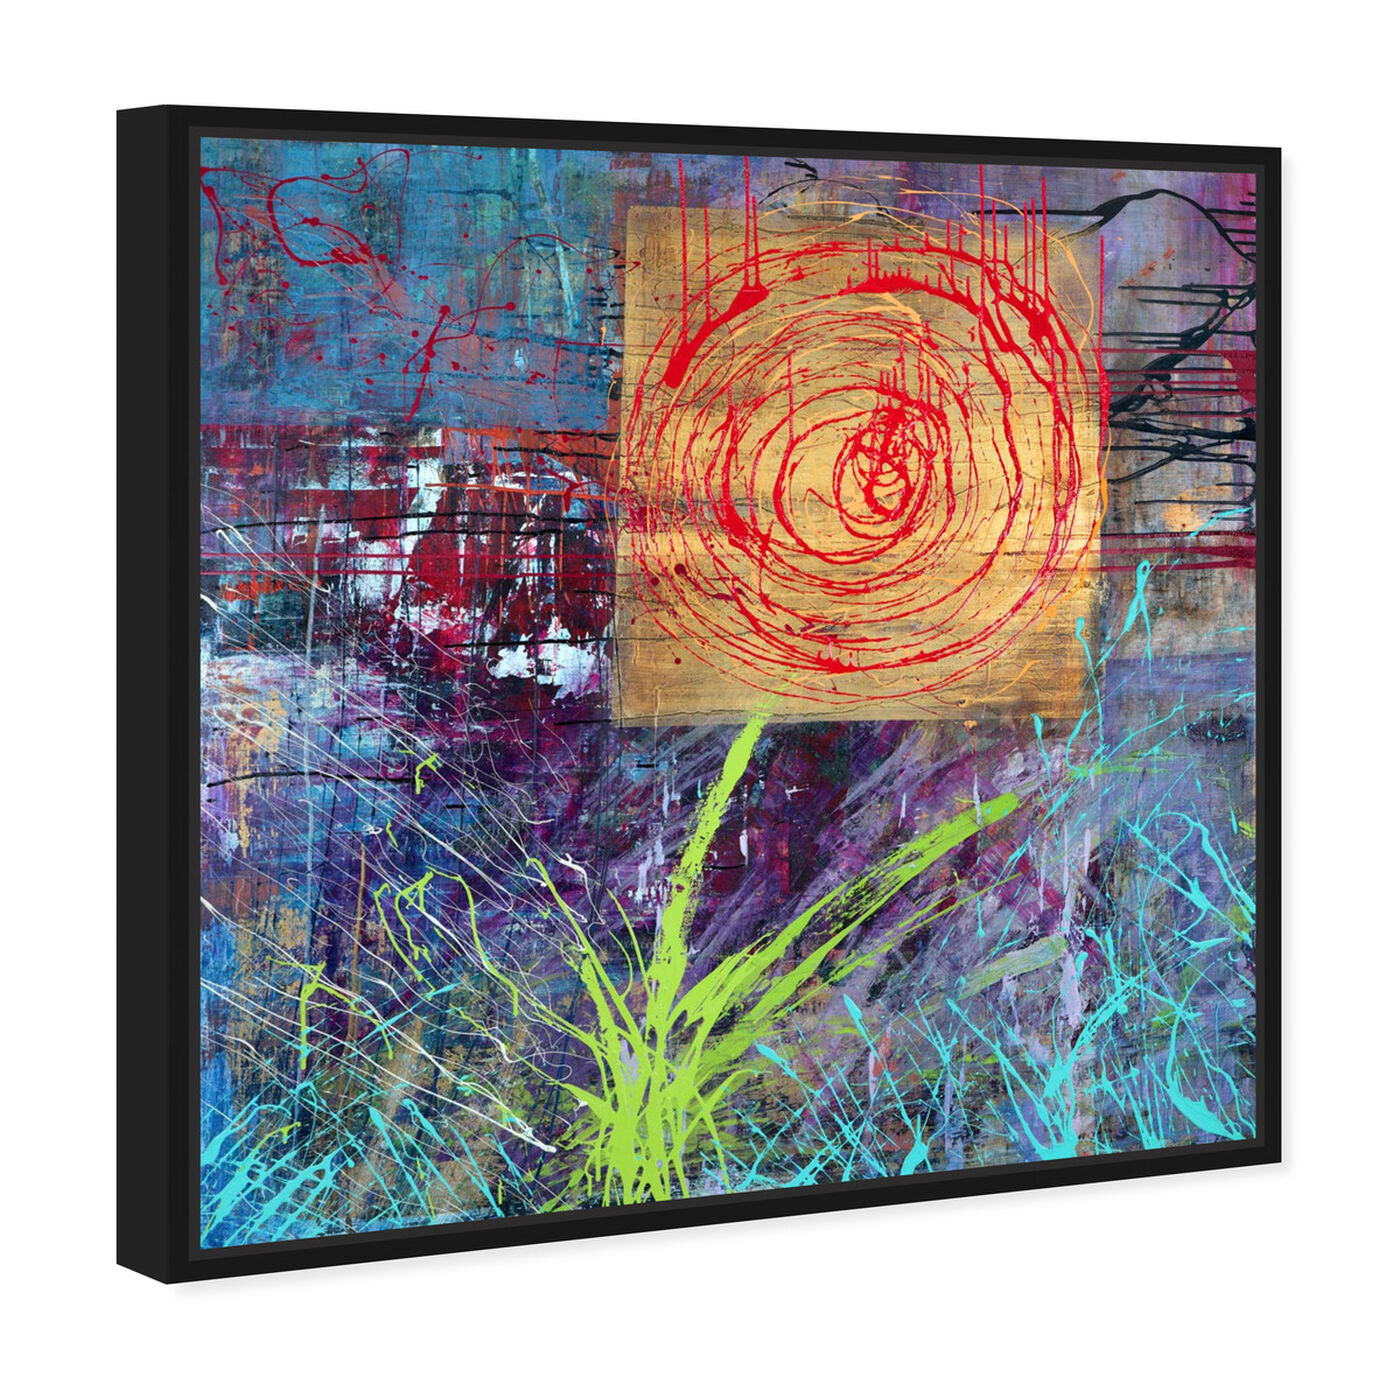 Angled view of Sai - Urban Blossom 1IC1323 featuring abstract and flowers art.